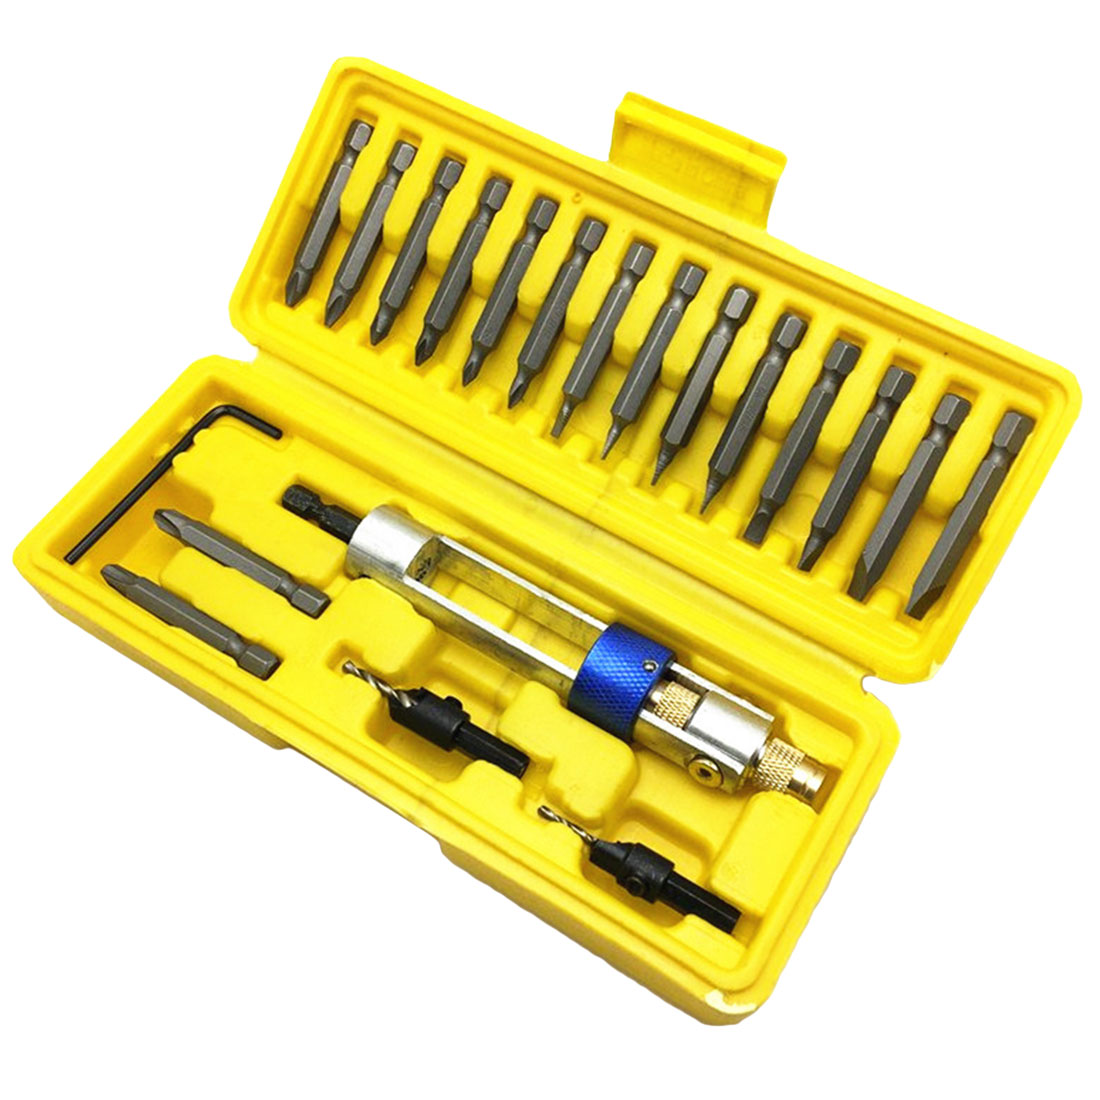 16 Different Kinds Head Screwdriver Sets 20Pcs Half Time Drill Driver Updated Version with Countersink Bits image